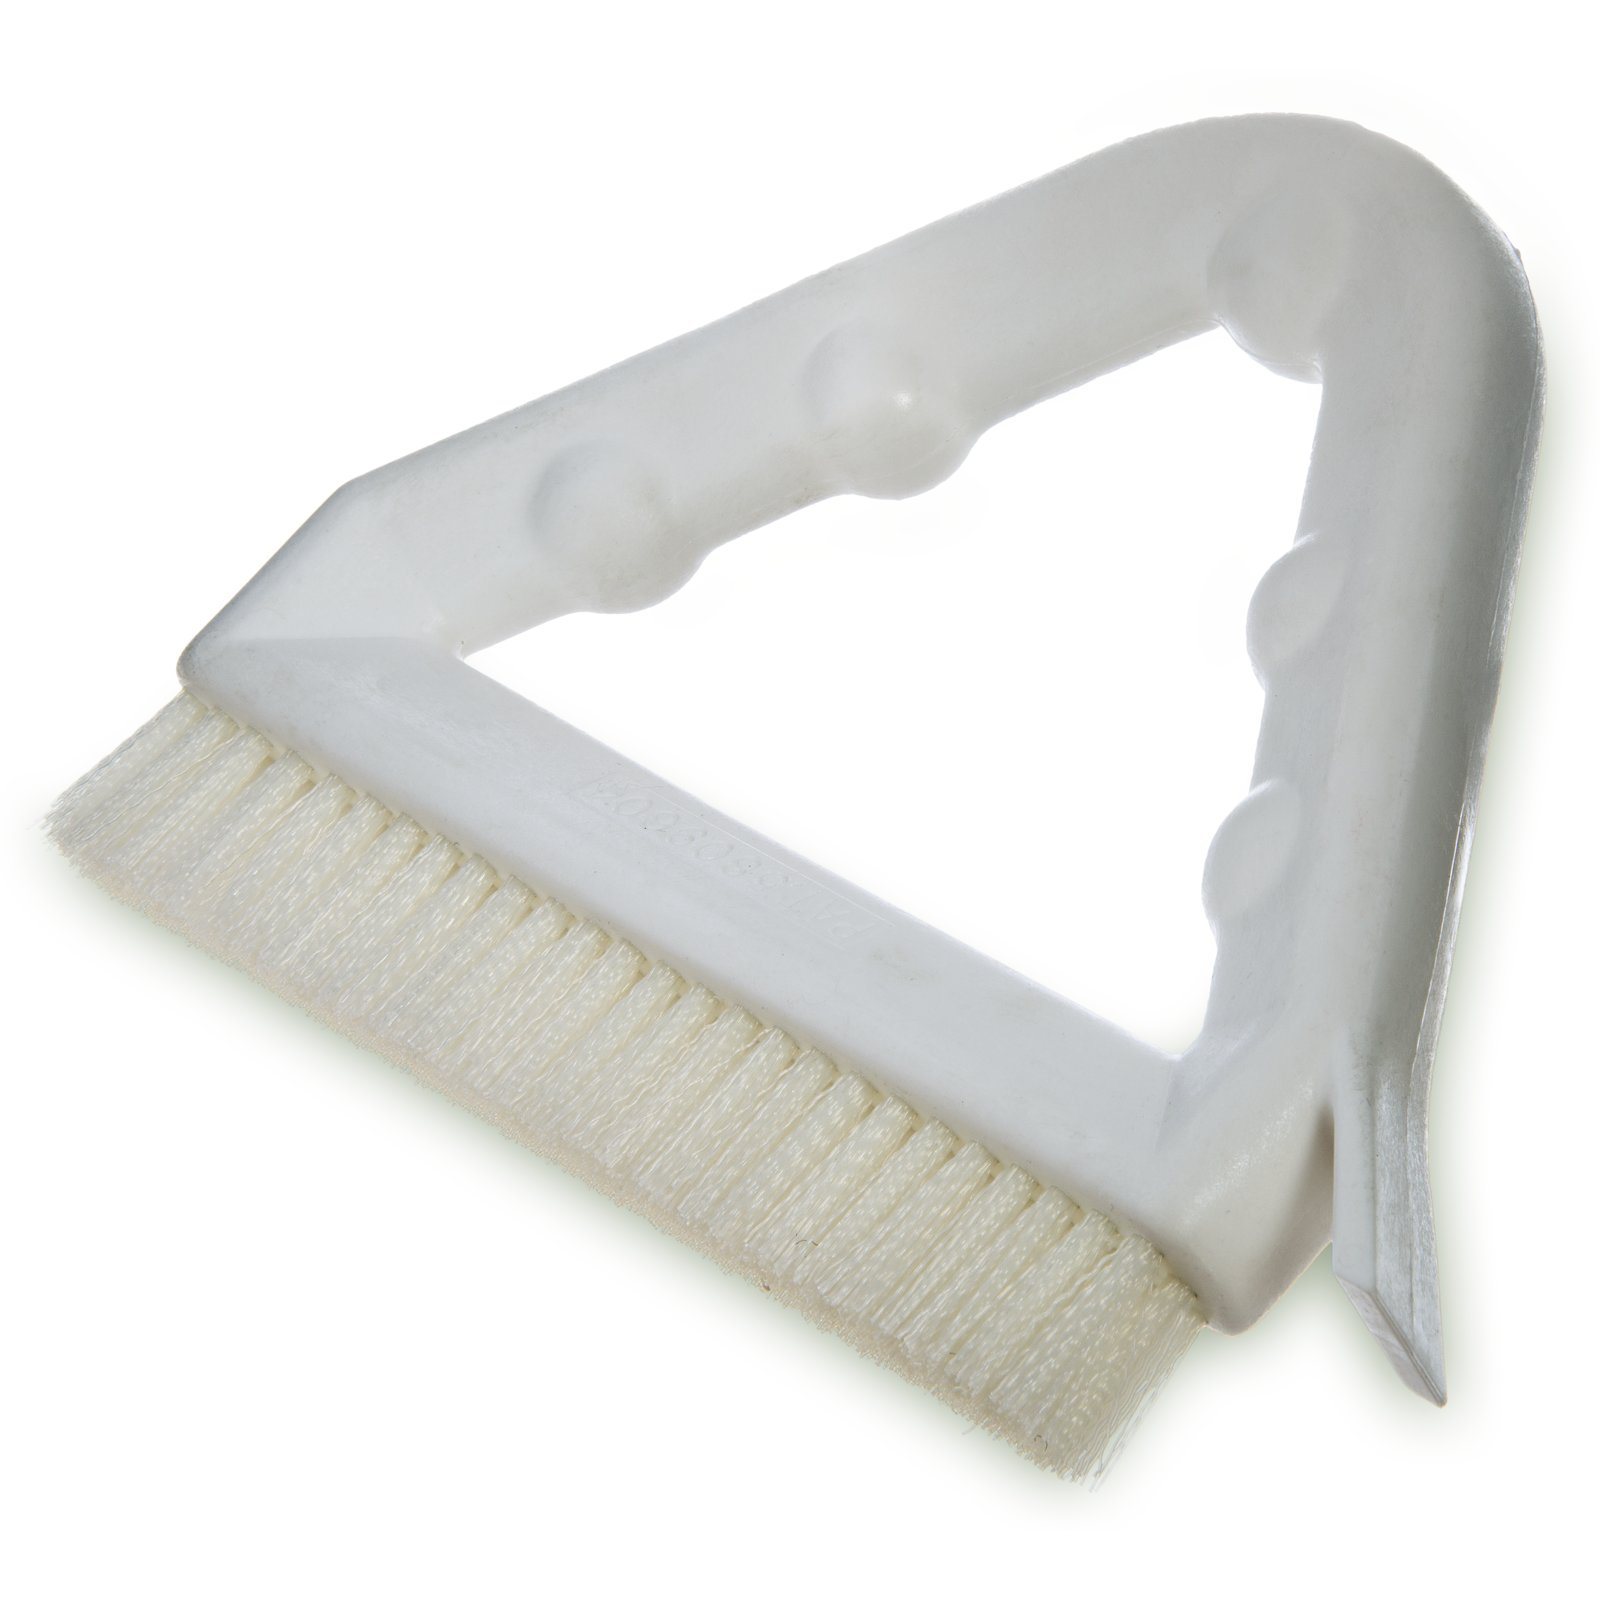 "BRUSH 9"" GROUT WHITE HAND HELD OR HANDLE MOUNTED"